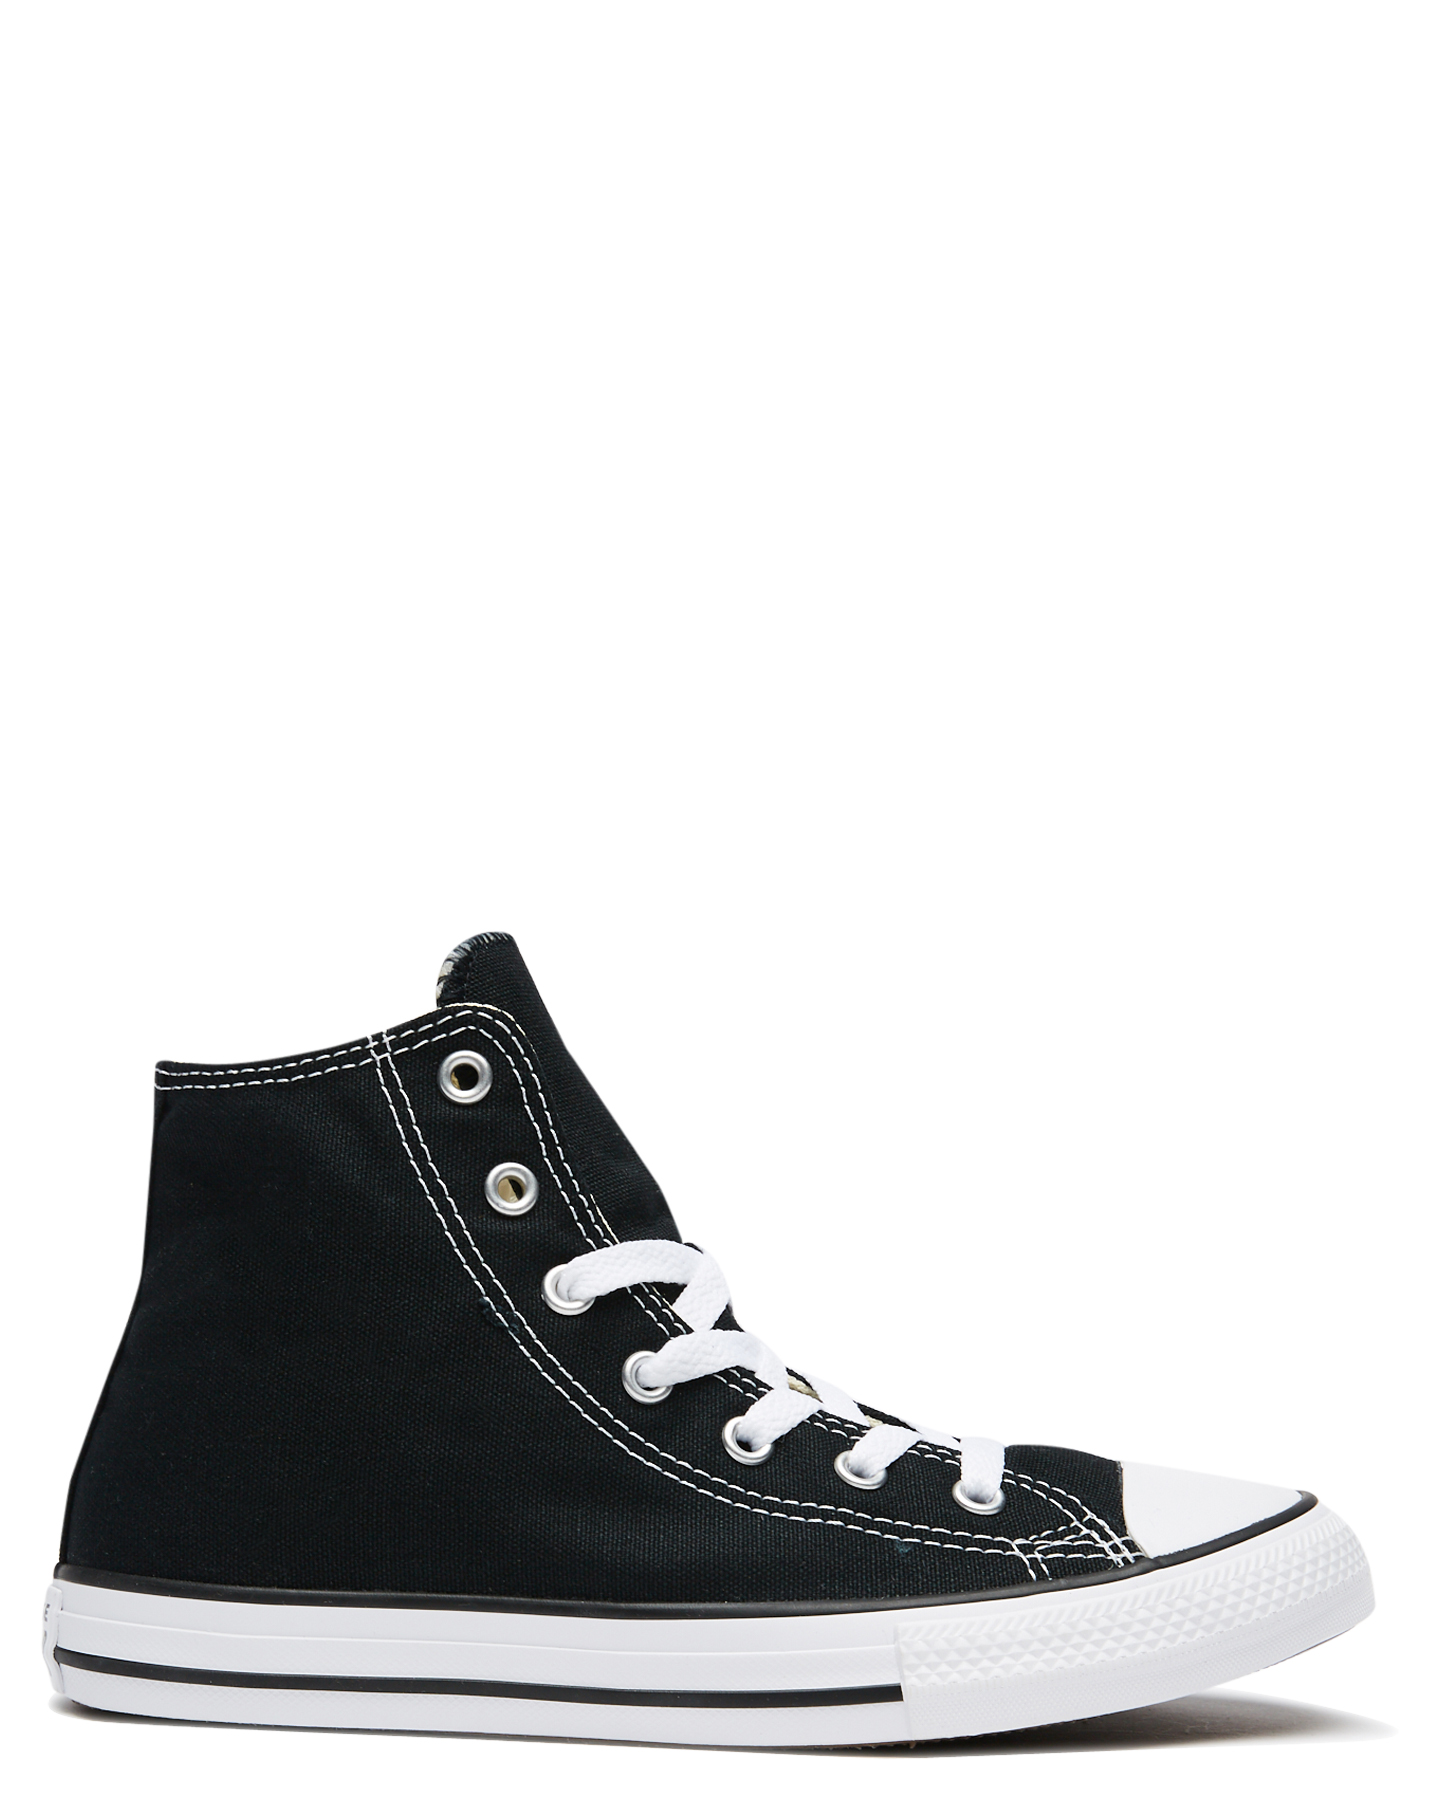 Converse Shoes Chuck Taylor All Star Infant Black Canvas Boys Sneakers Hi Top